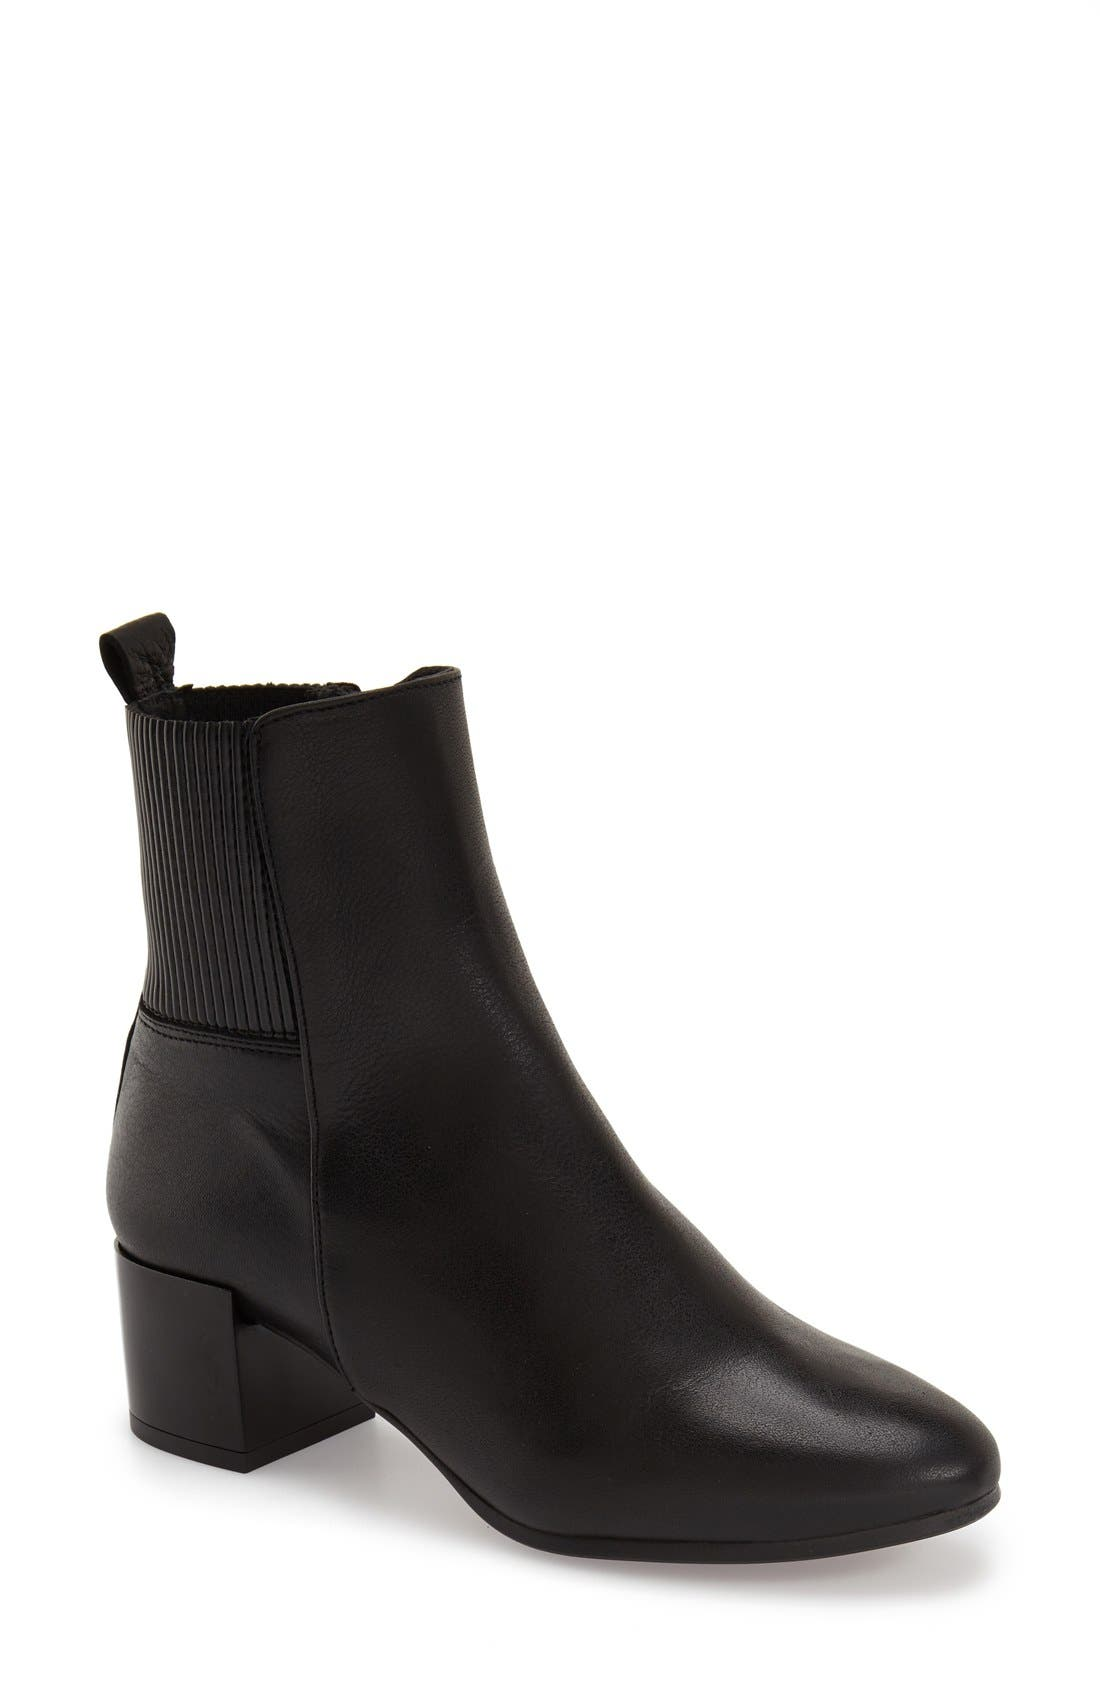 Alternate Image 1 Selected - Topshop 'Marbles' Ankle Boot (Women)